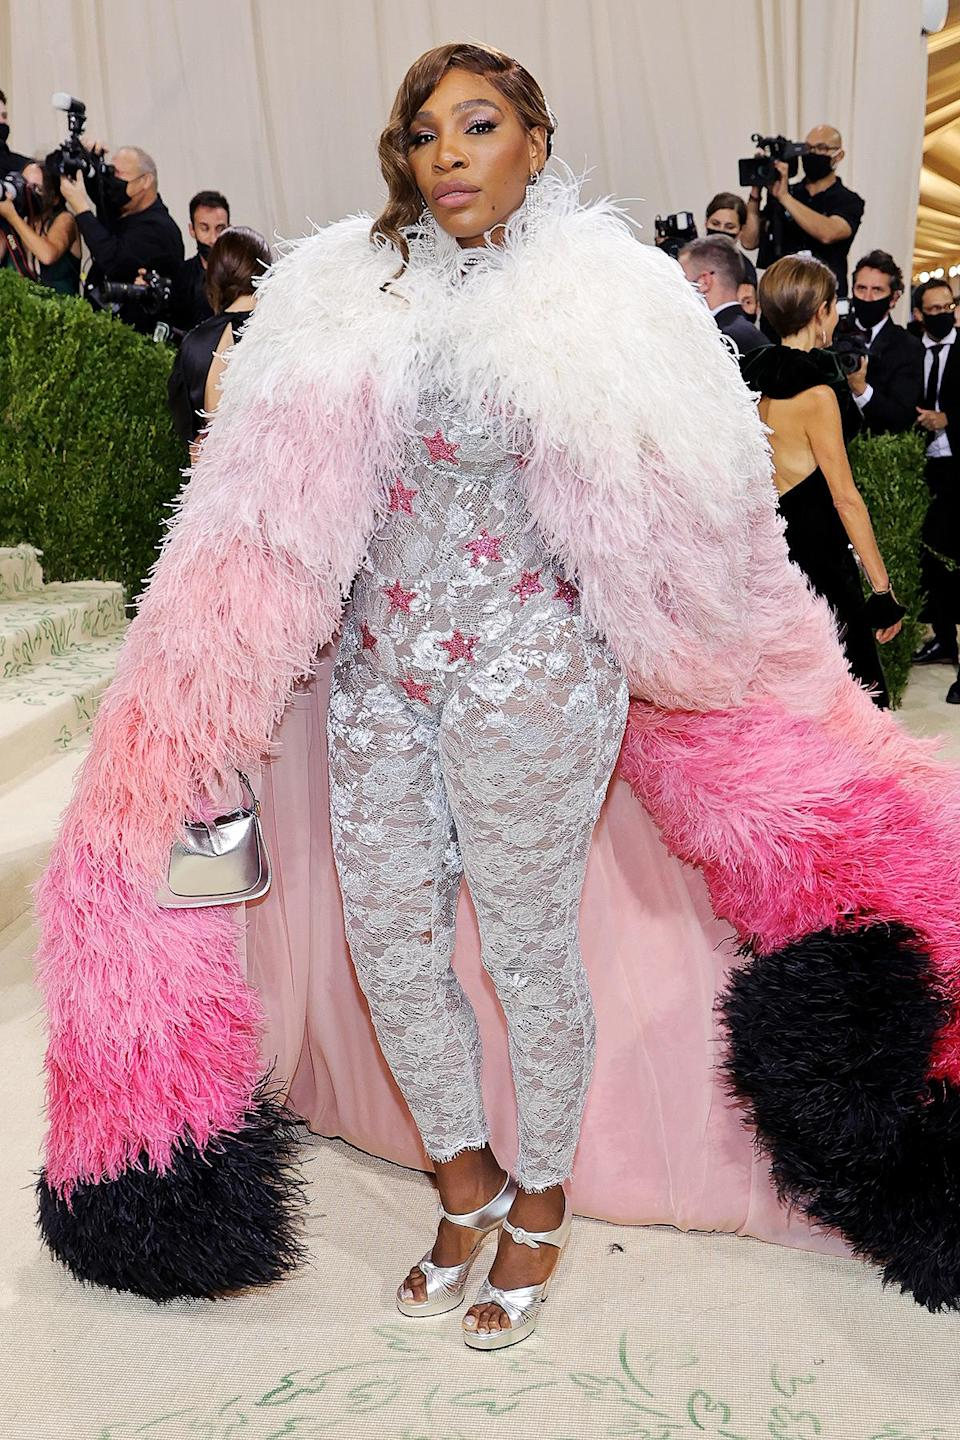 <p>Joined by her husband Alexis Ohanian for the event, the tennis champion wore a silver lace catsuit with pink stars by Gucci, paired with an ombre pink feather cape.</p>